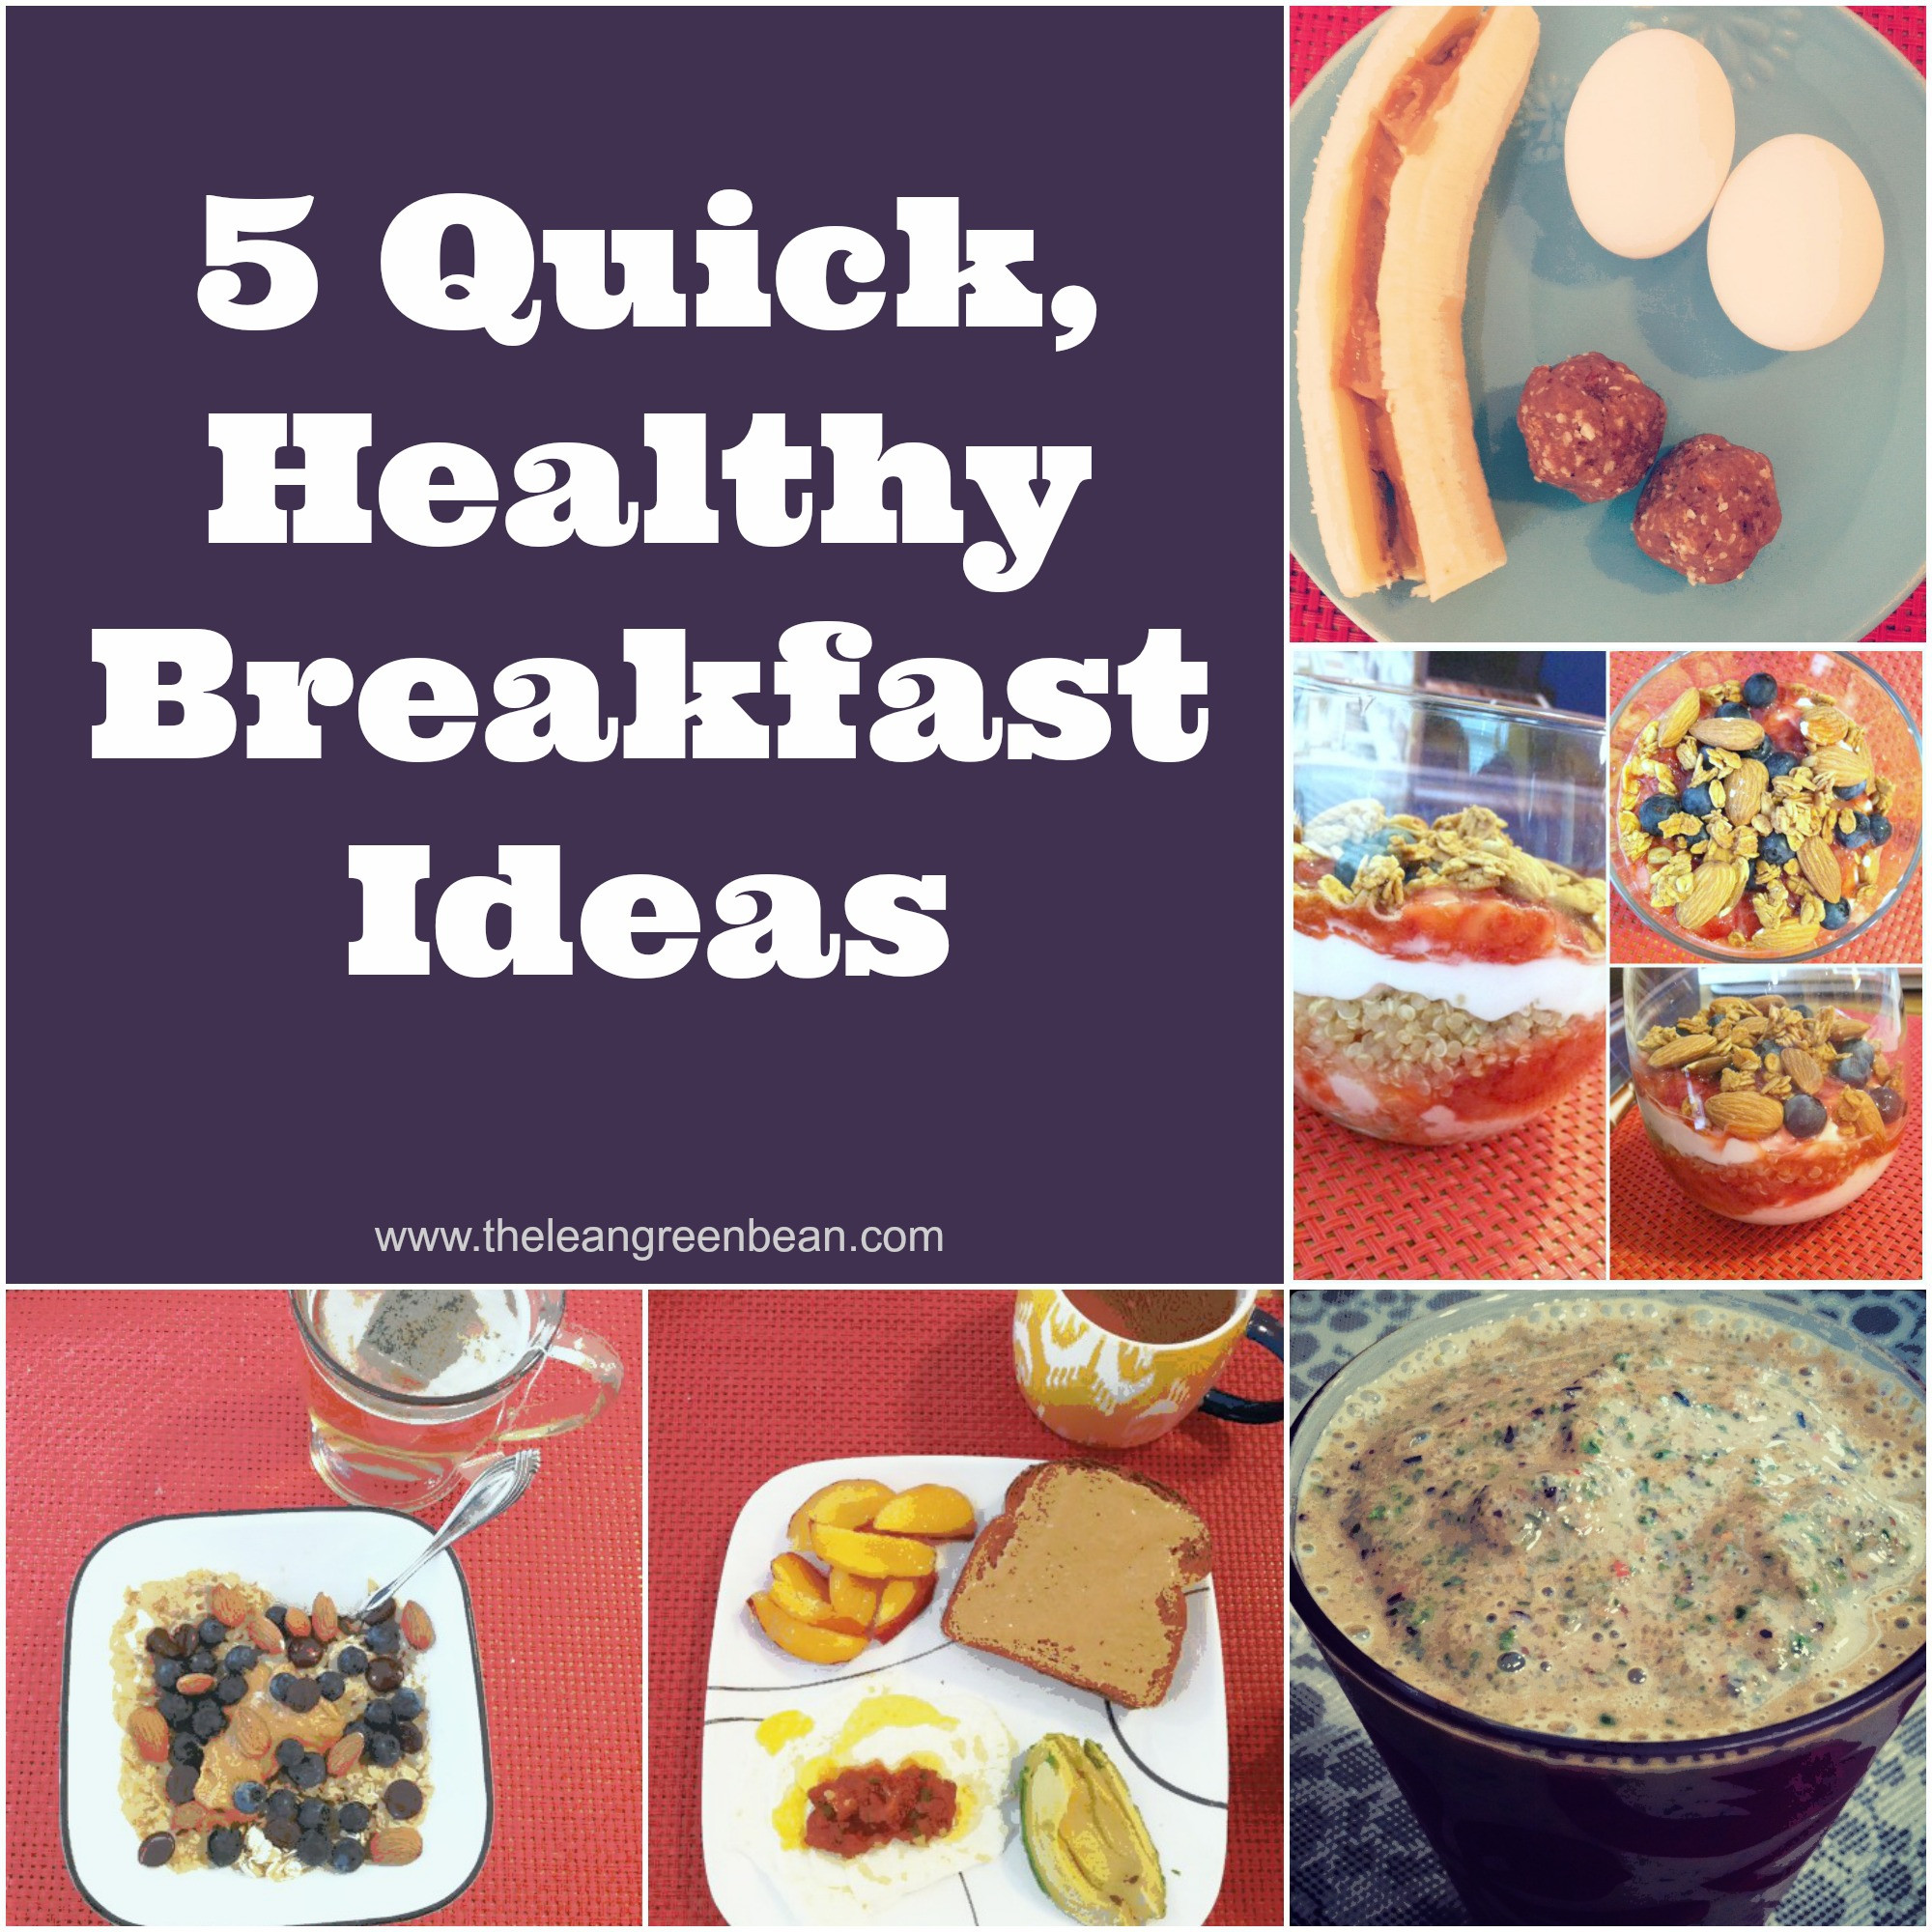 Quick And Healthy Breakfast  5 Quick Healthy Breakfast Ideas from a Registered Dietitian